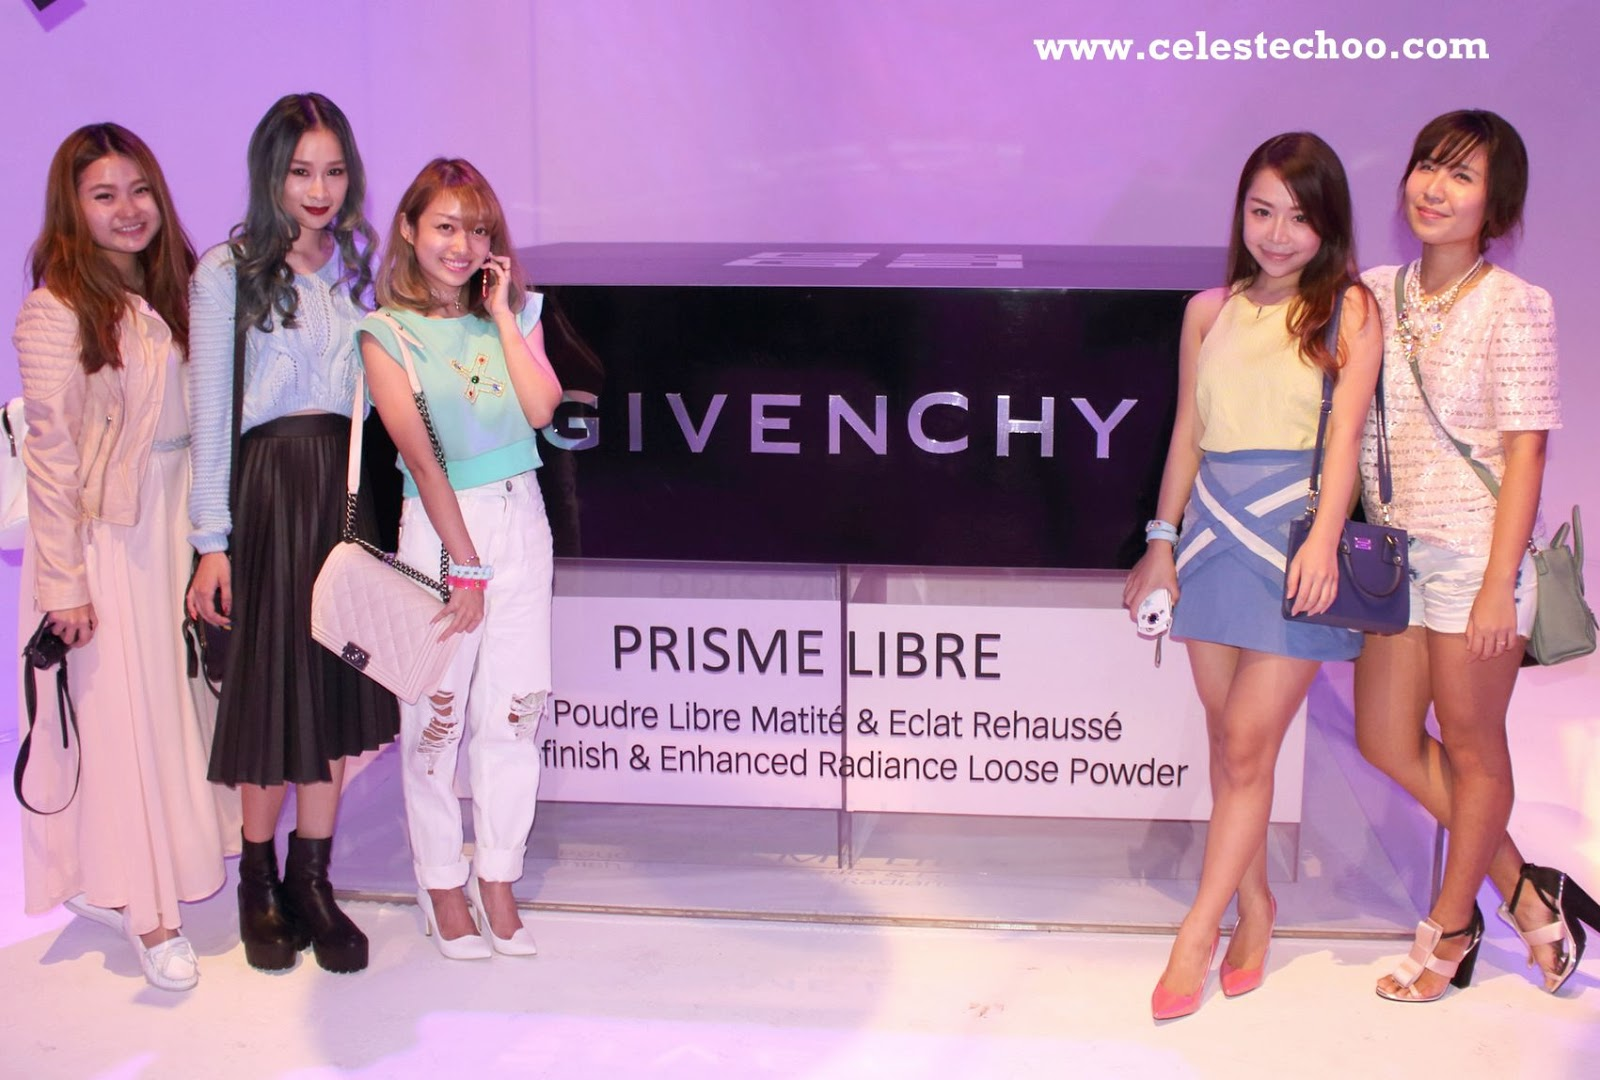 image-givenchy-prisme-libre-poudre-premiere-beauty-makeup-launch